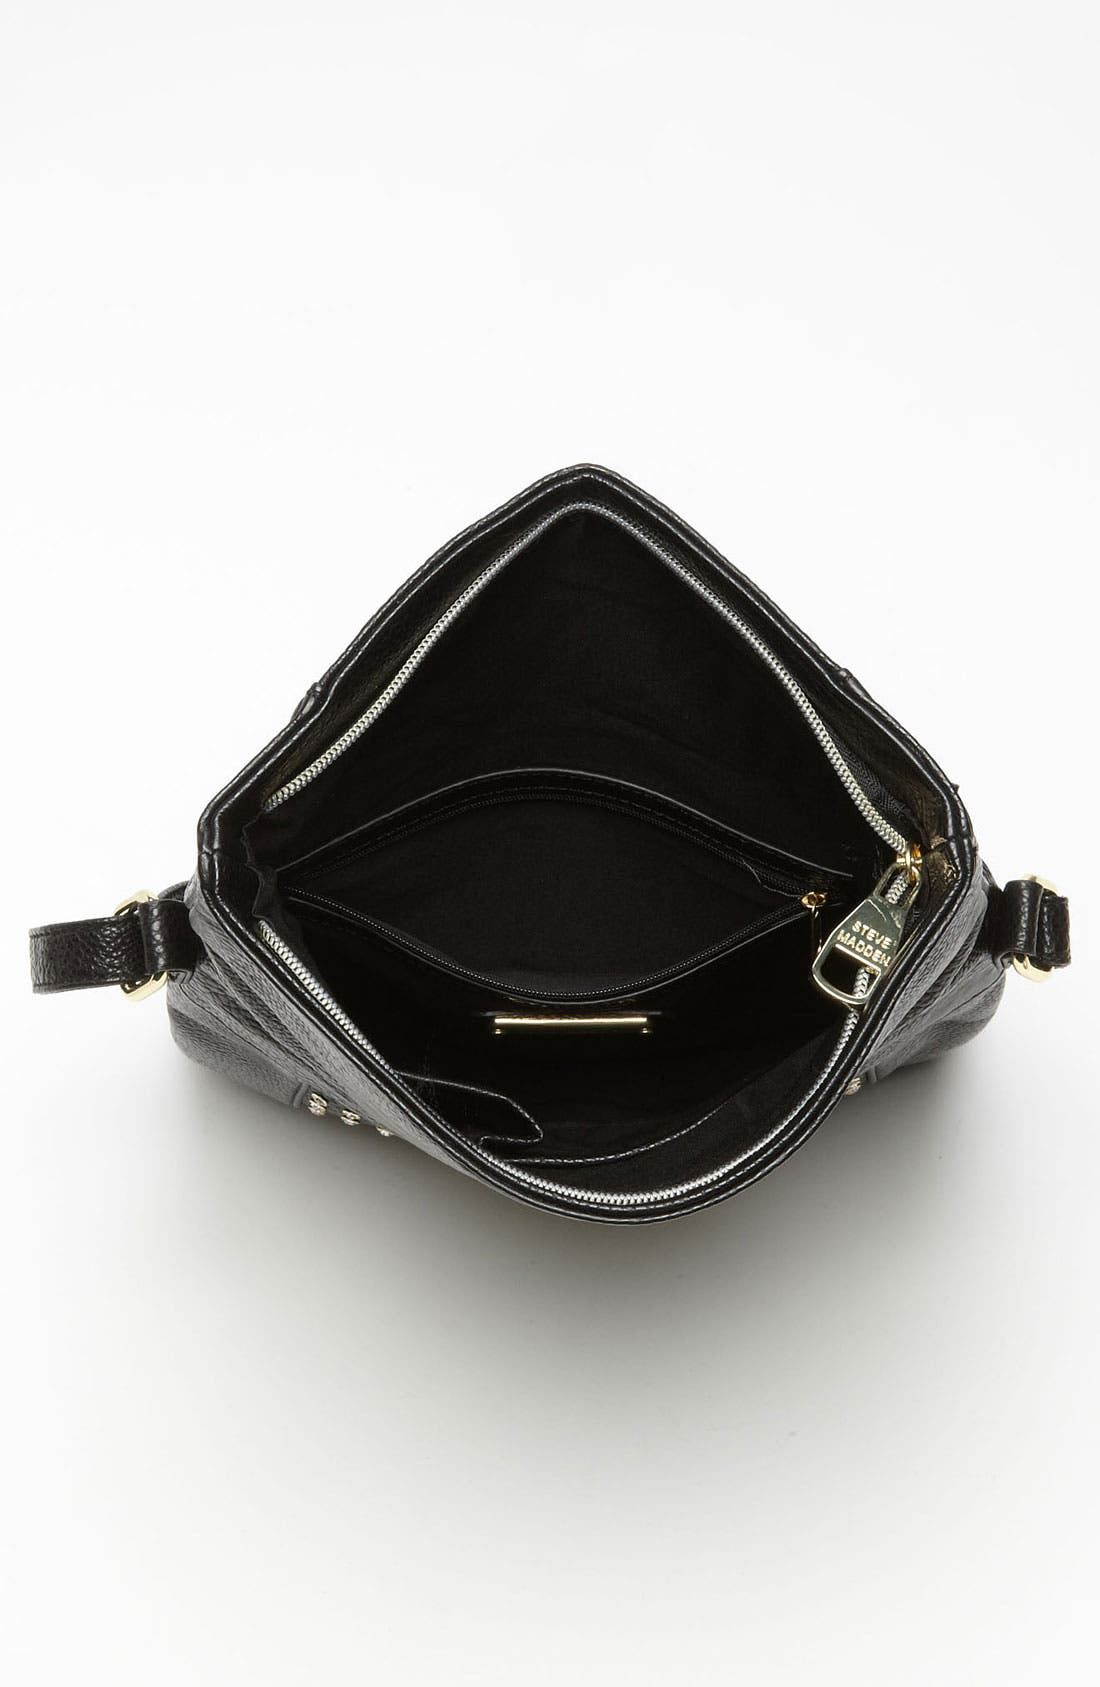 Alternate Image 3  - Steve Madden 'Stud Love' Foldover Crossbody Bag